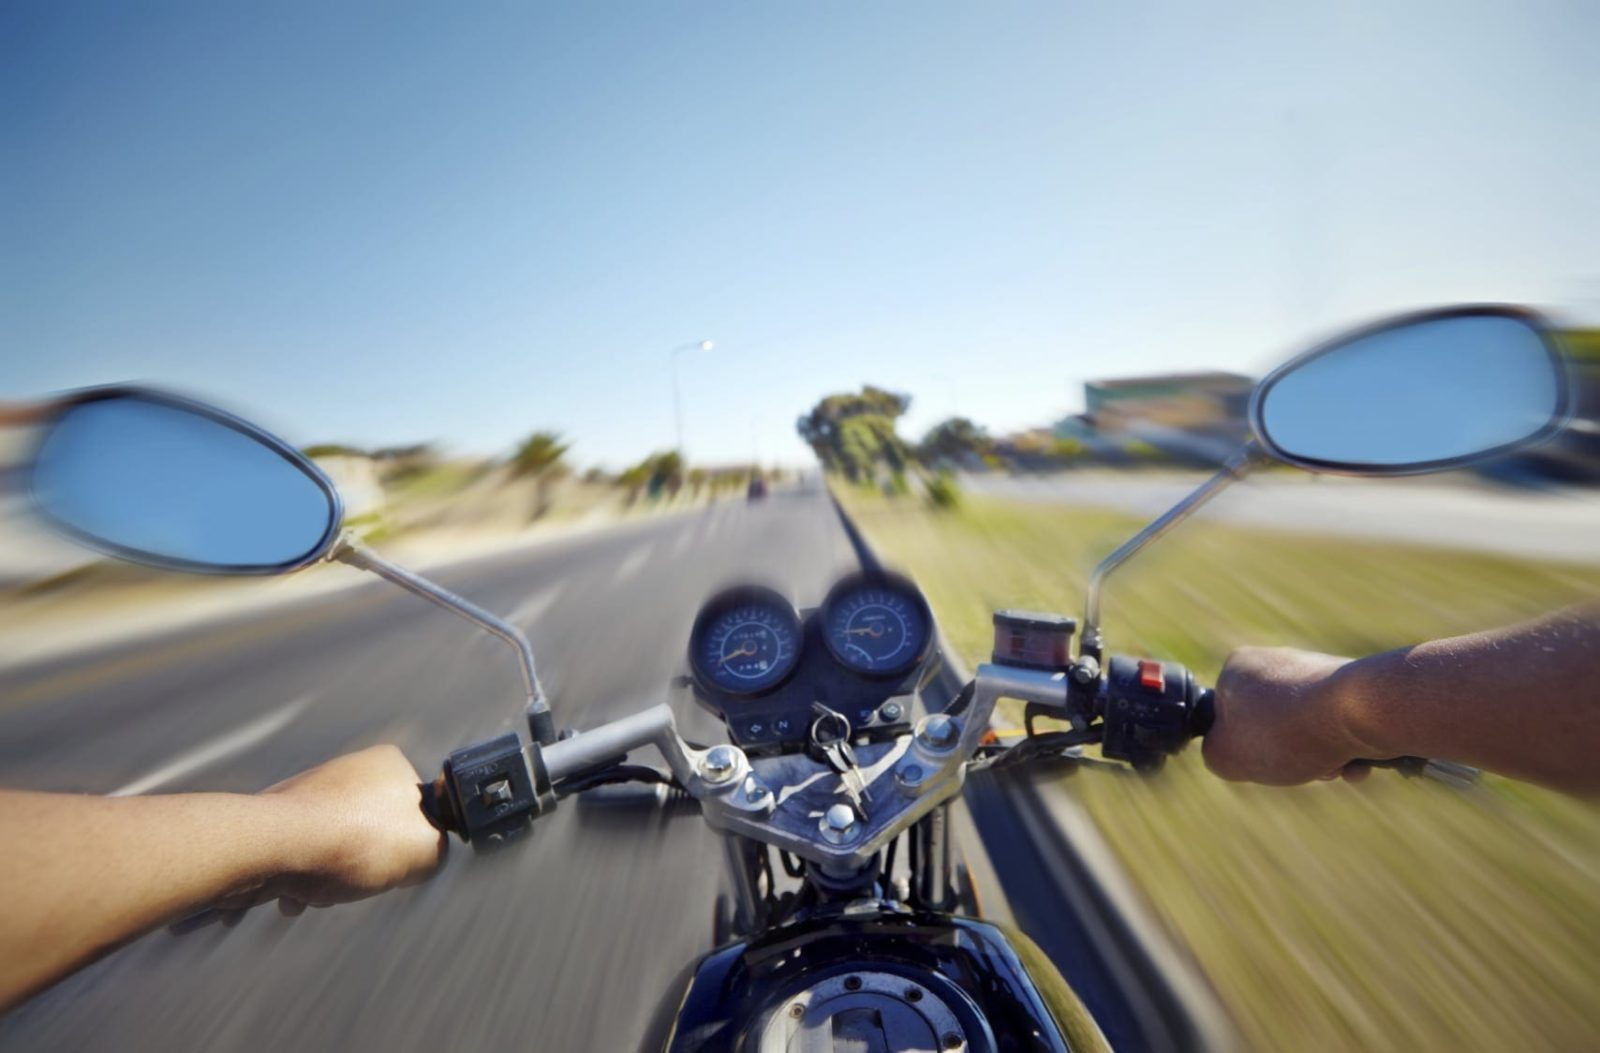 Man Riding Motorcycle On The Highway Stock Photo